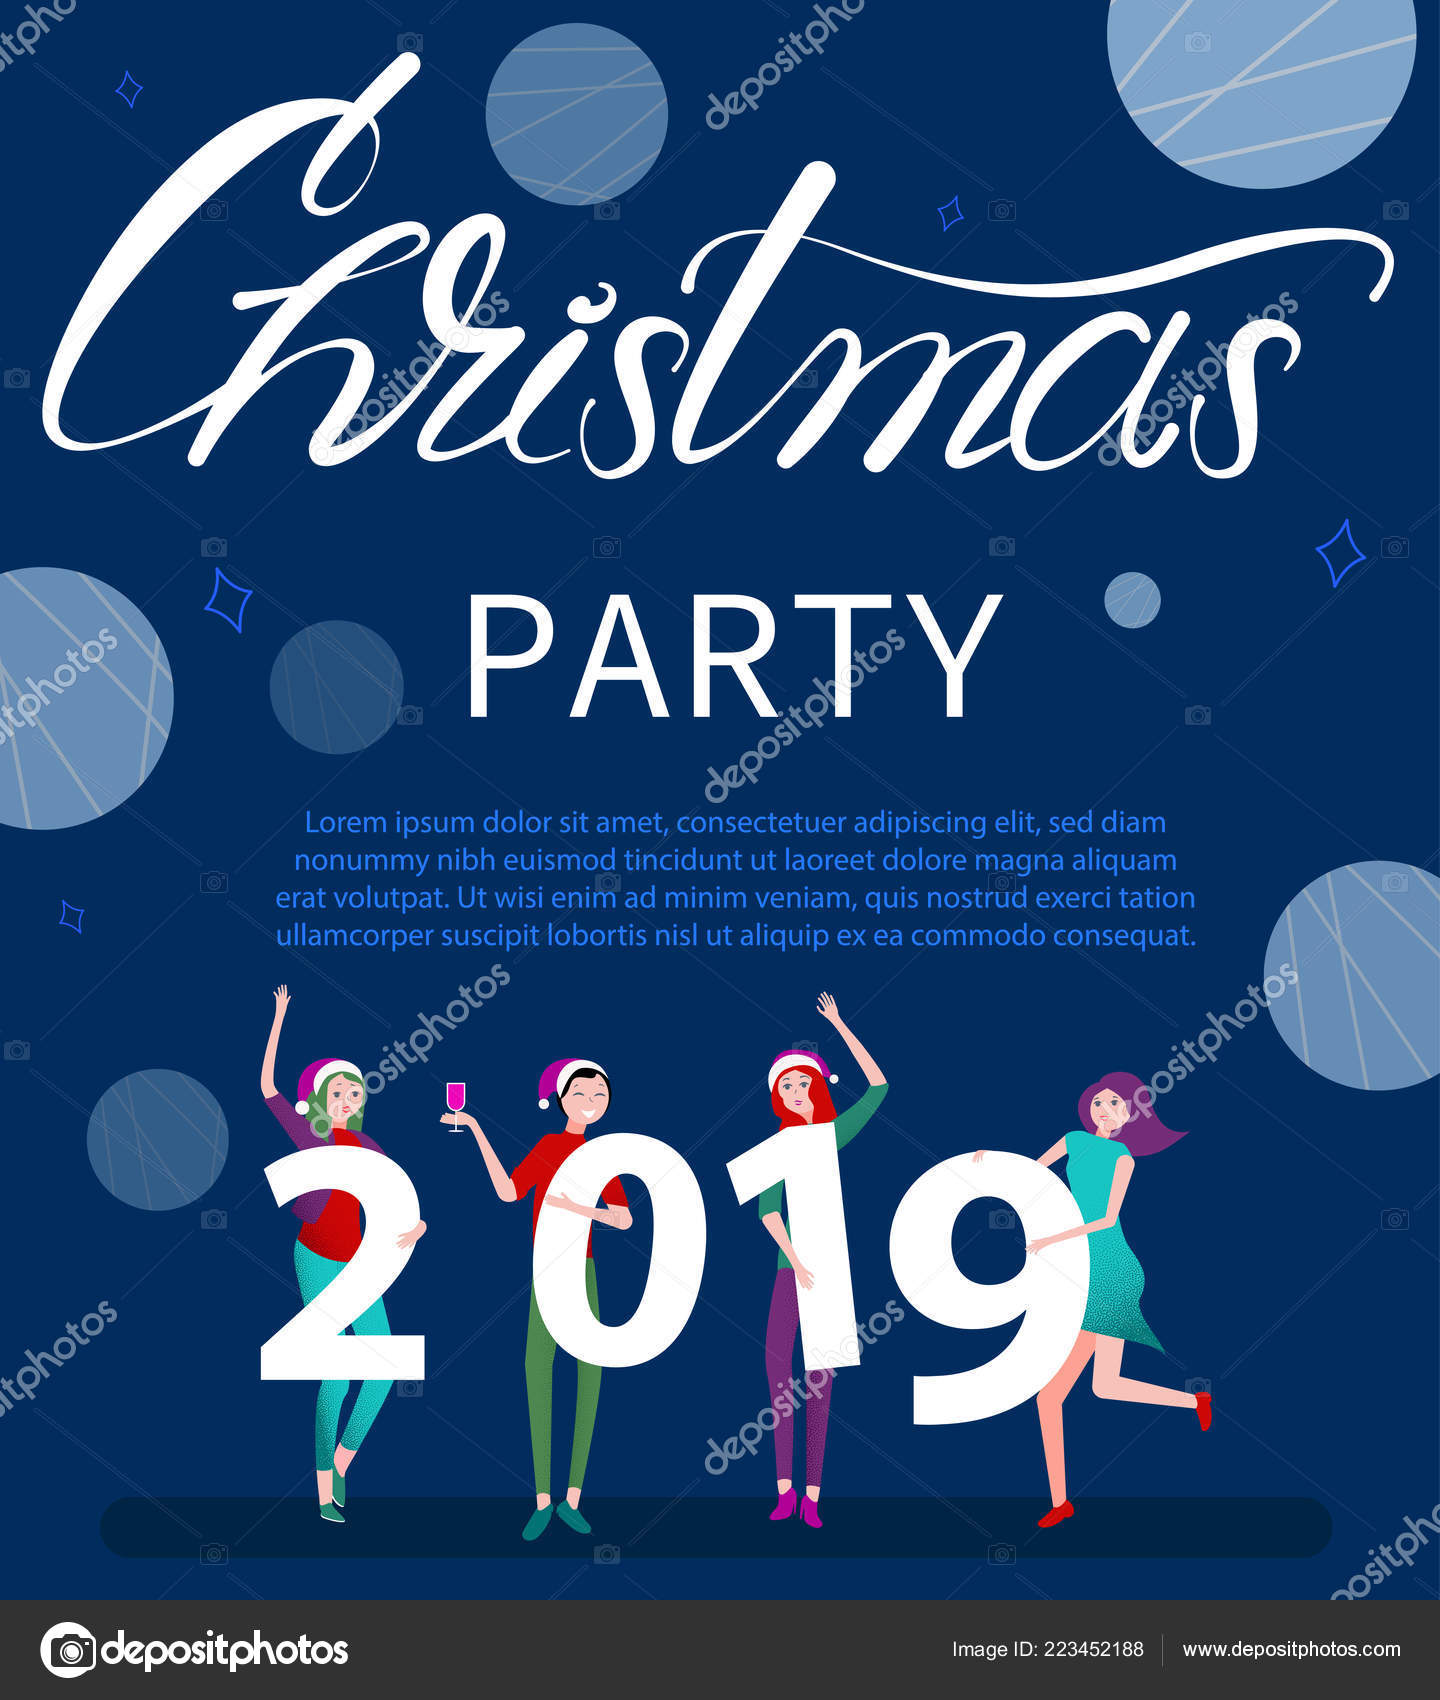 Christmas Party 2019 Logo.Christmas Party 2019 Poster Or Invitation With Happy People